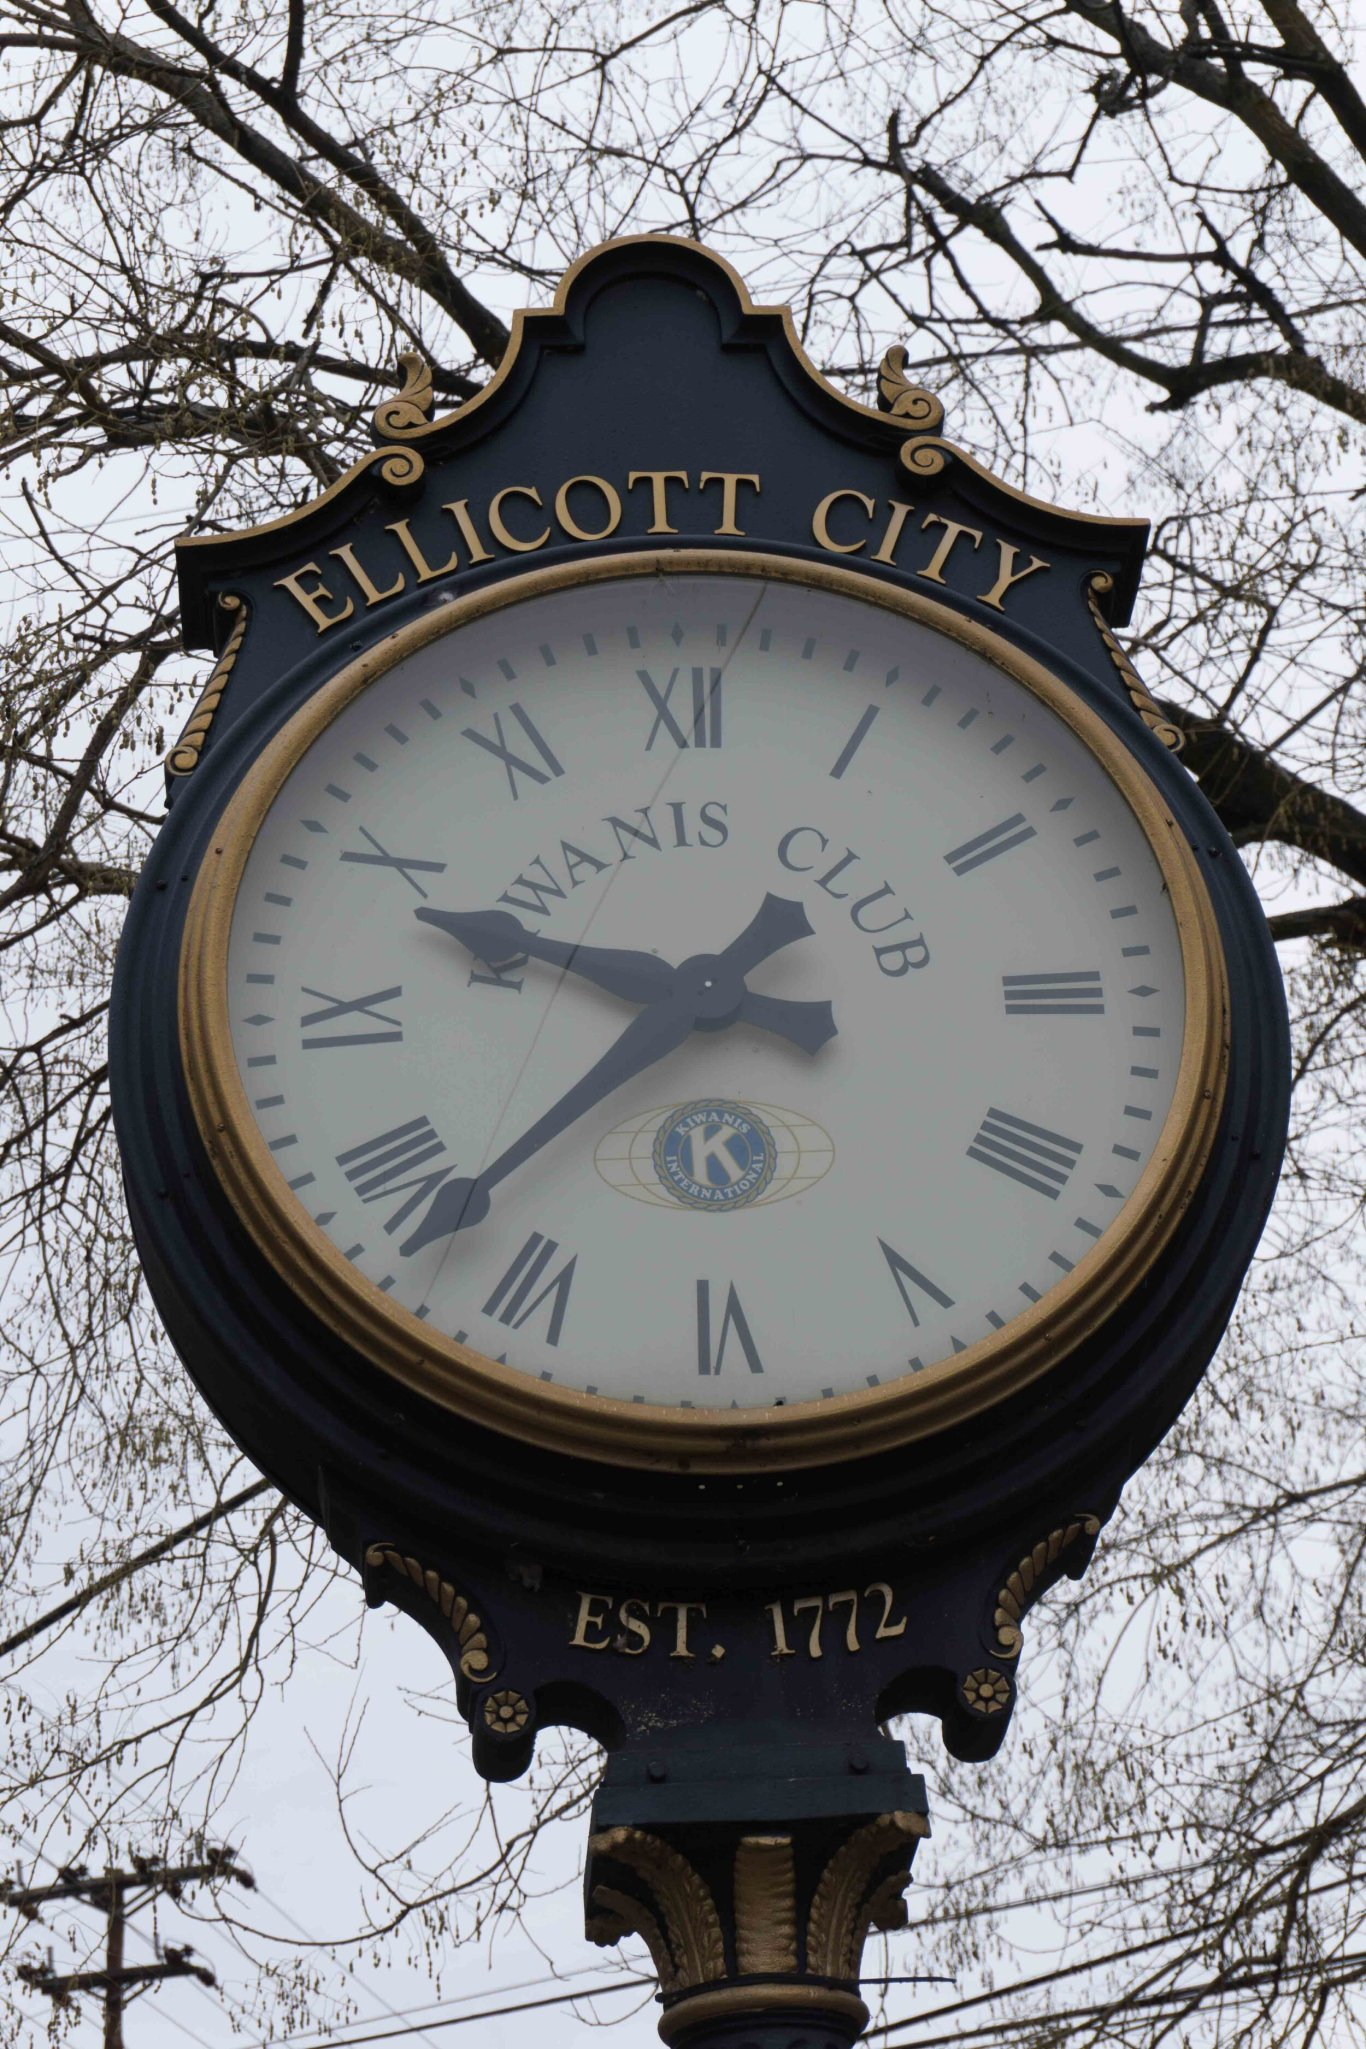 Ellicott City Clock, 12/28/2015